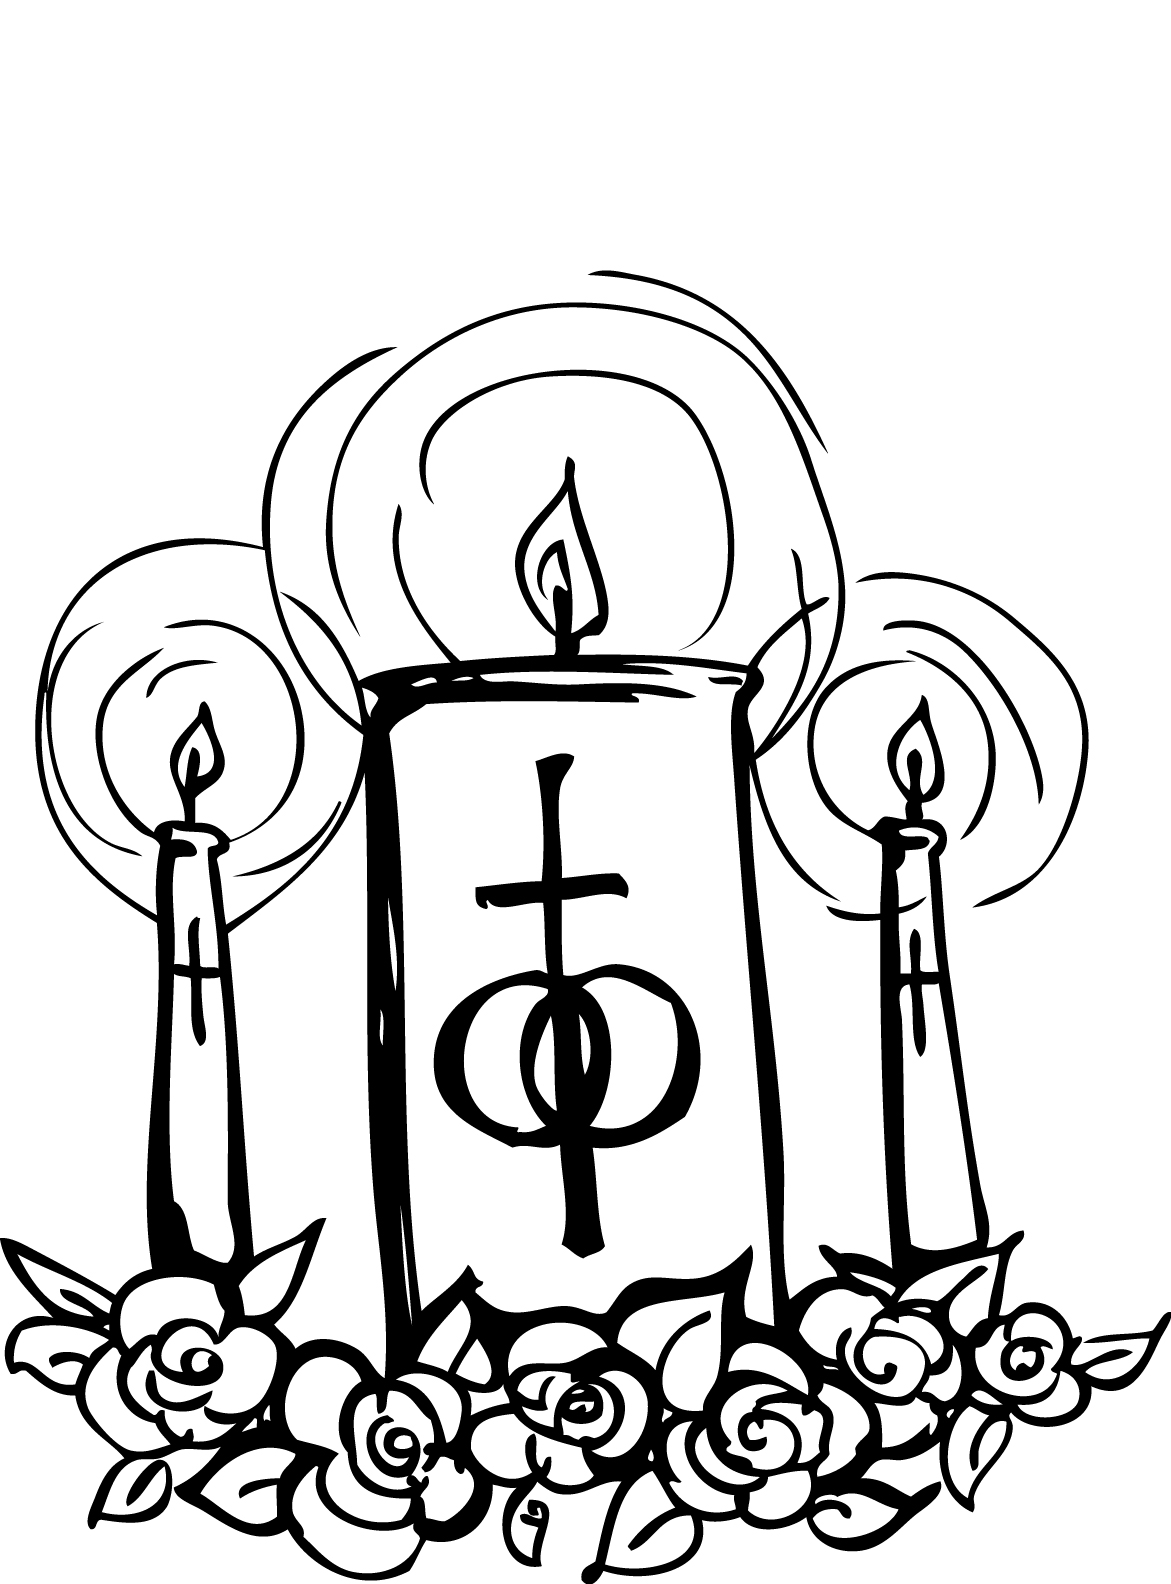 Free Catholic Wedding Cliparts, Download Free Clip Art, Free.